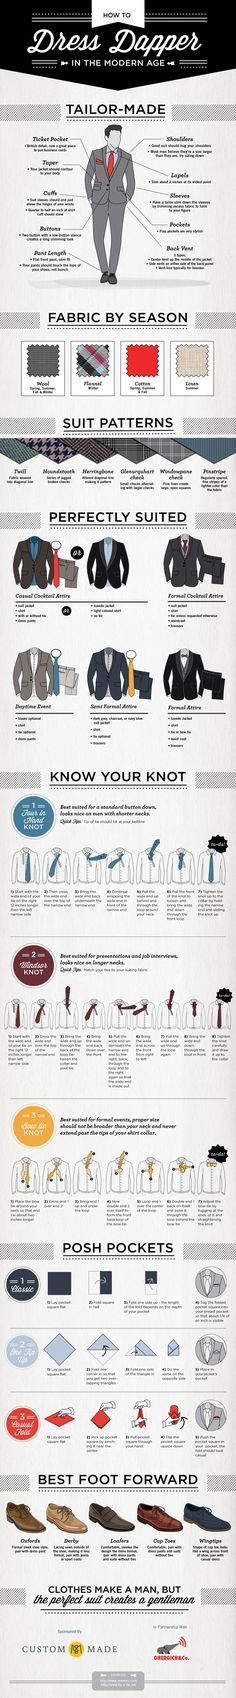 Men's Style: How to dress dapper in the modern age [Infographic by CustomMade] | Raddest Looks On The Internet: http://www.raddestlooks.net